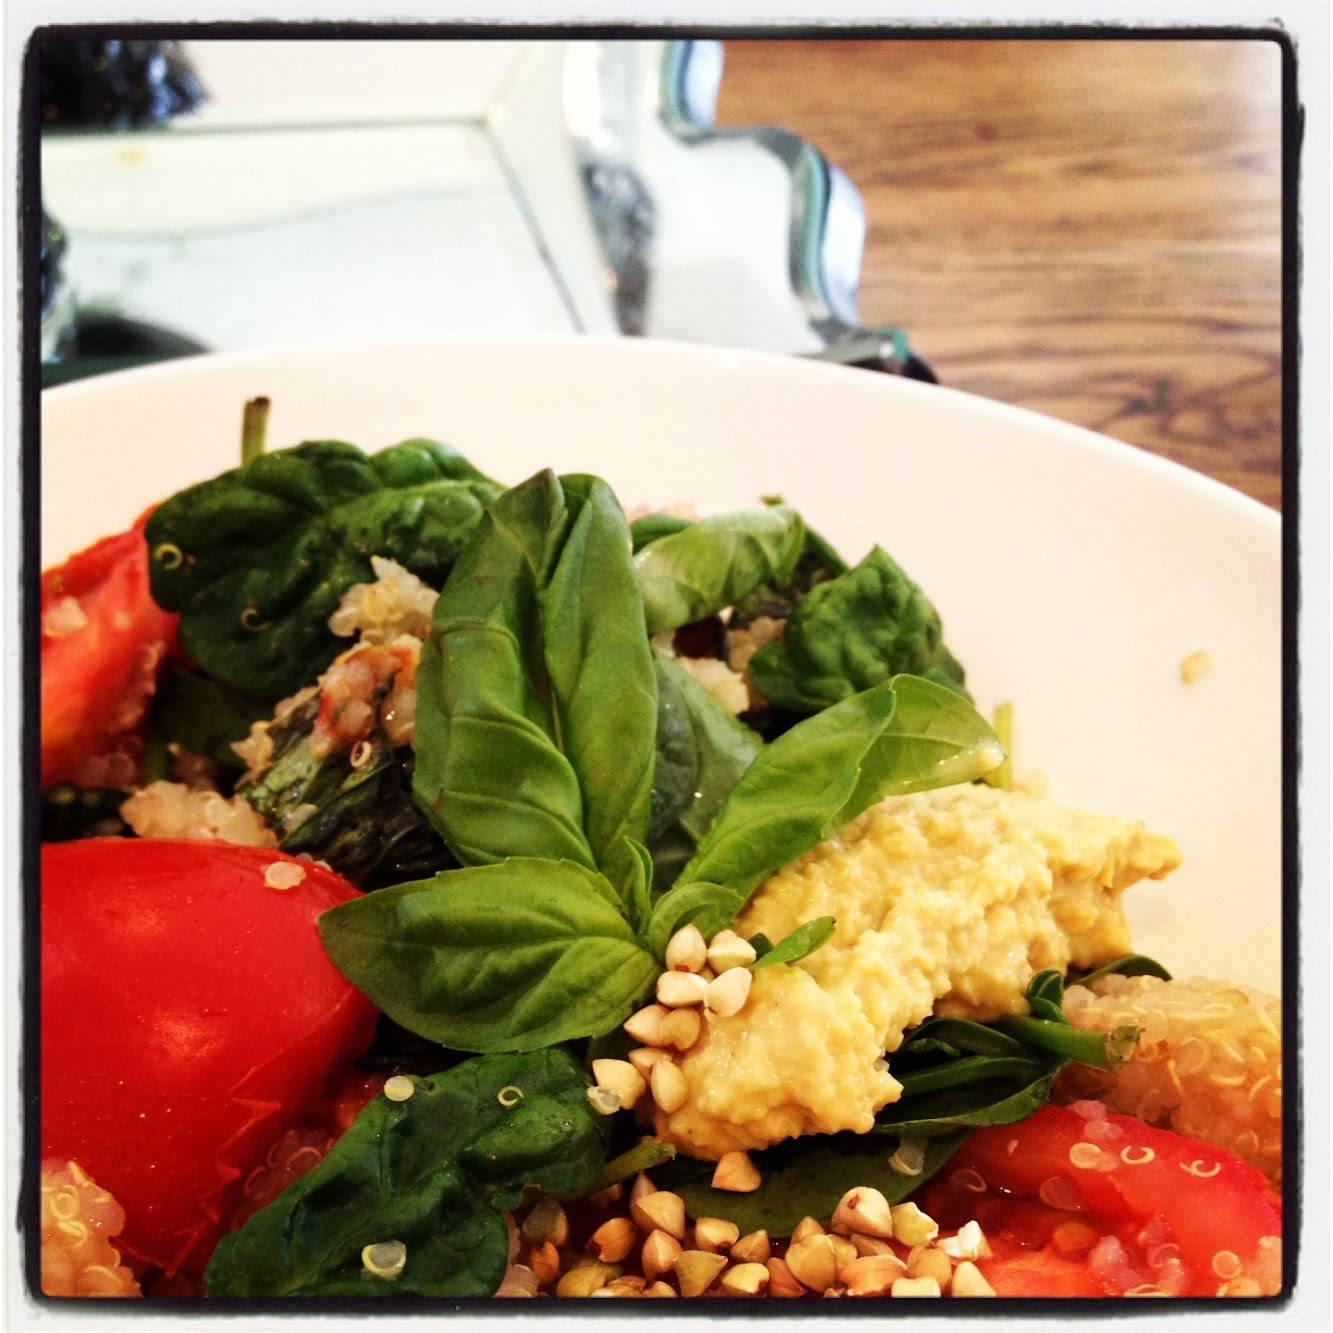 Wellness Wednesday: Guest Post- Quinoa, the superfood!